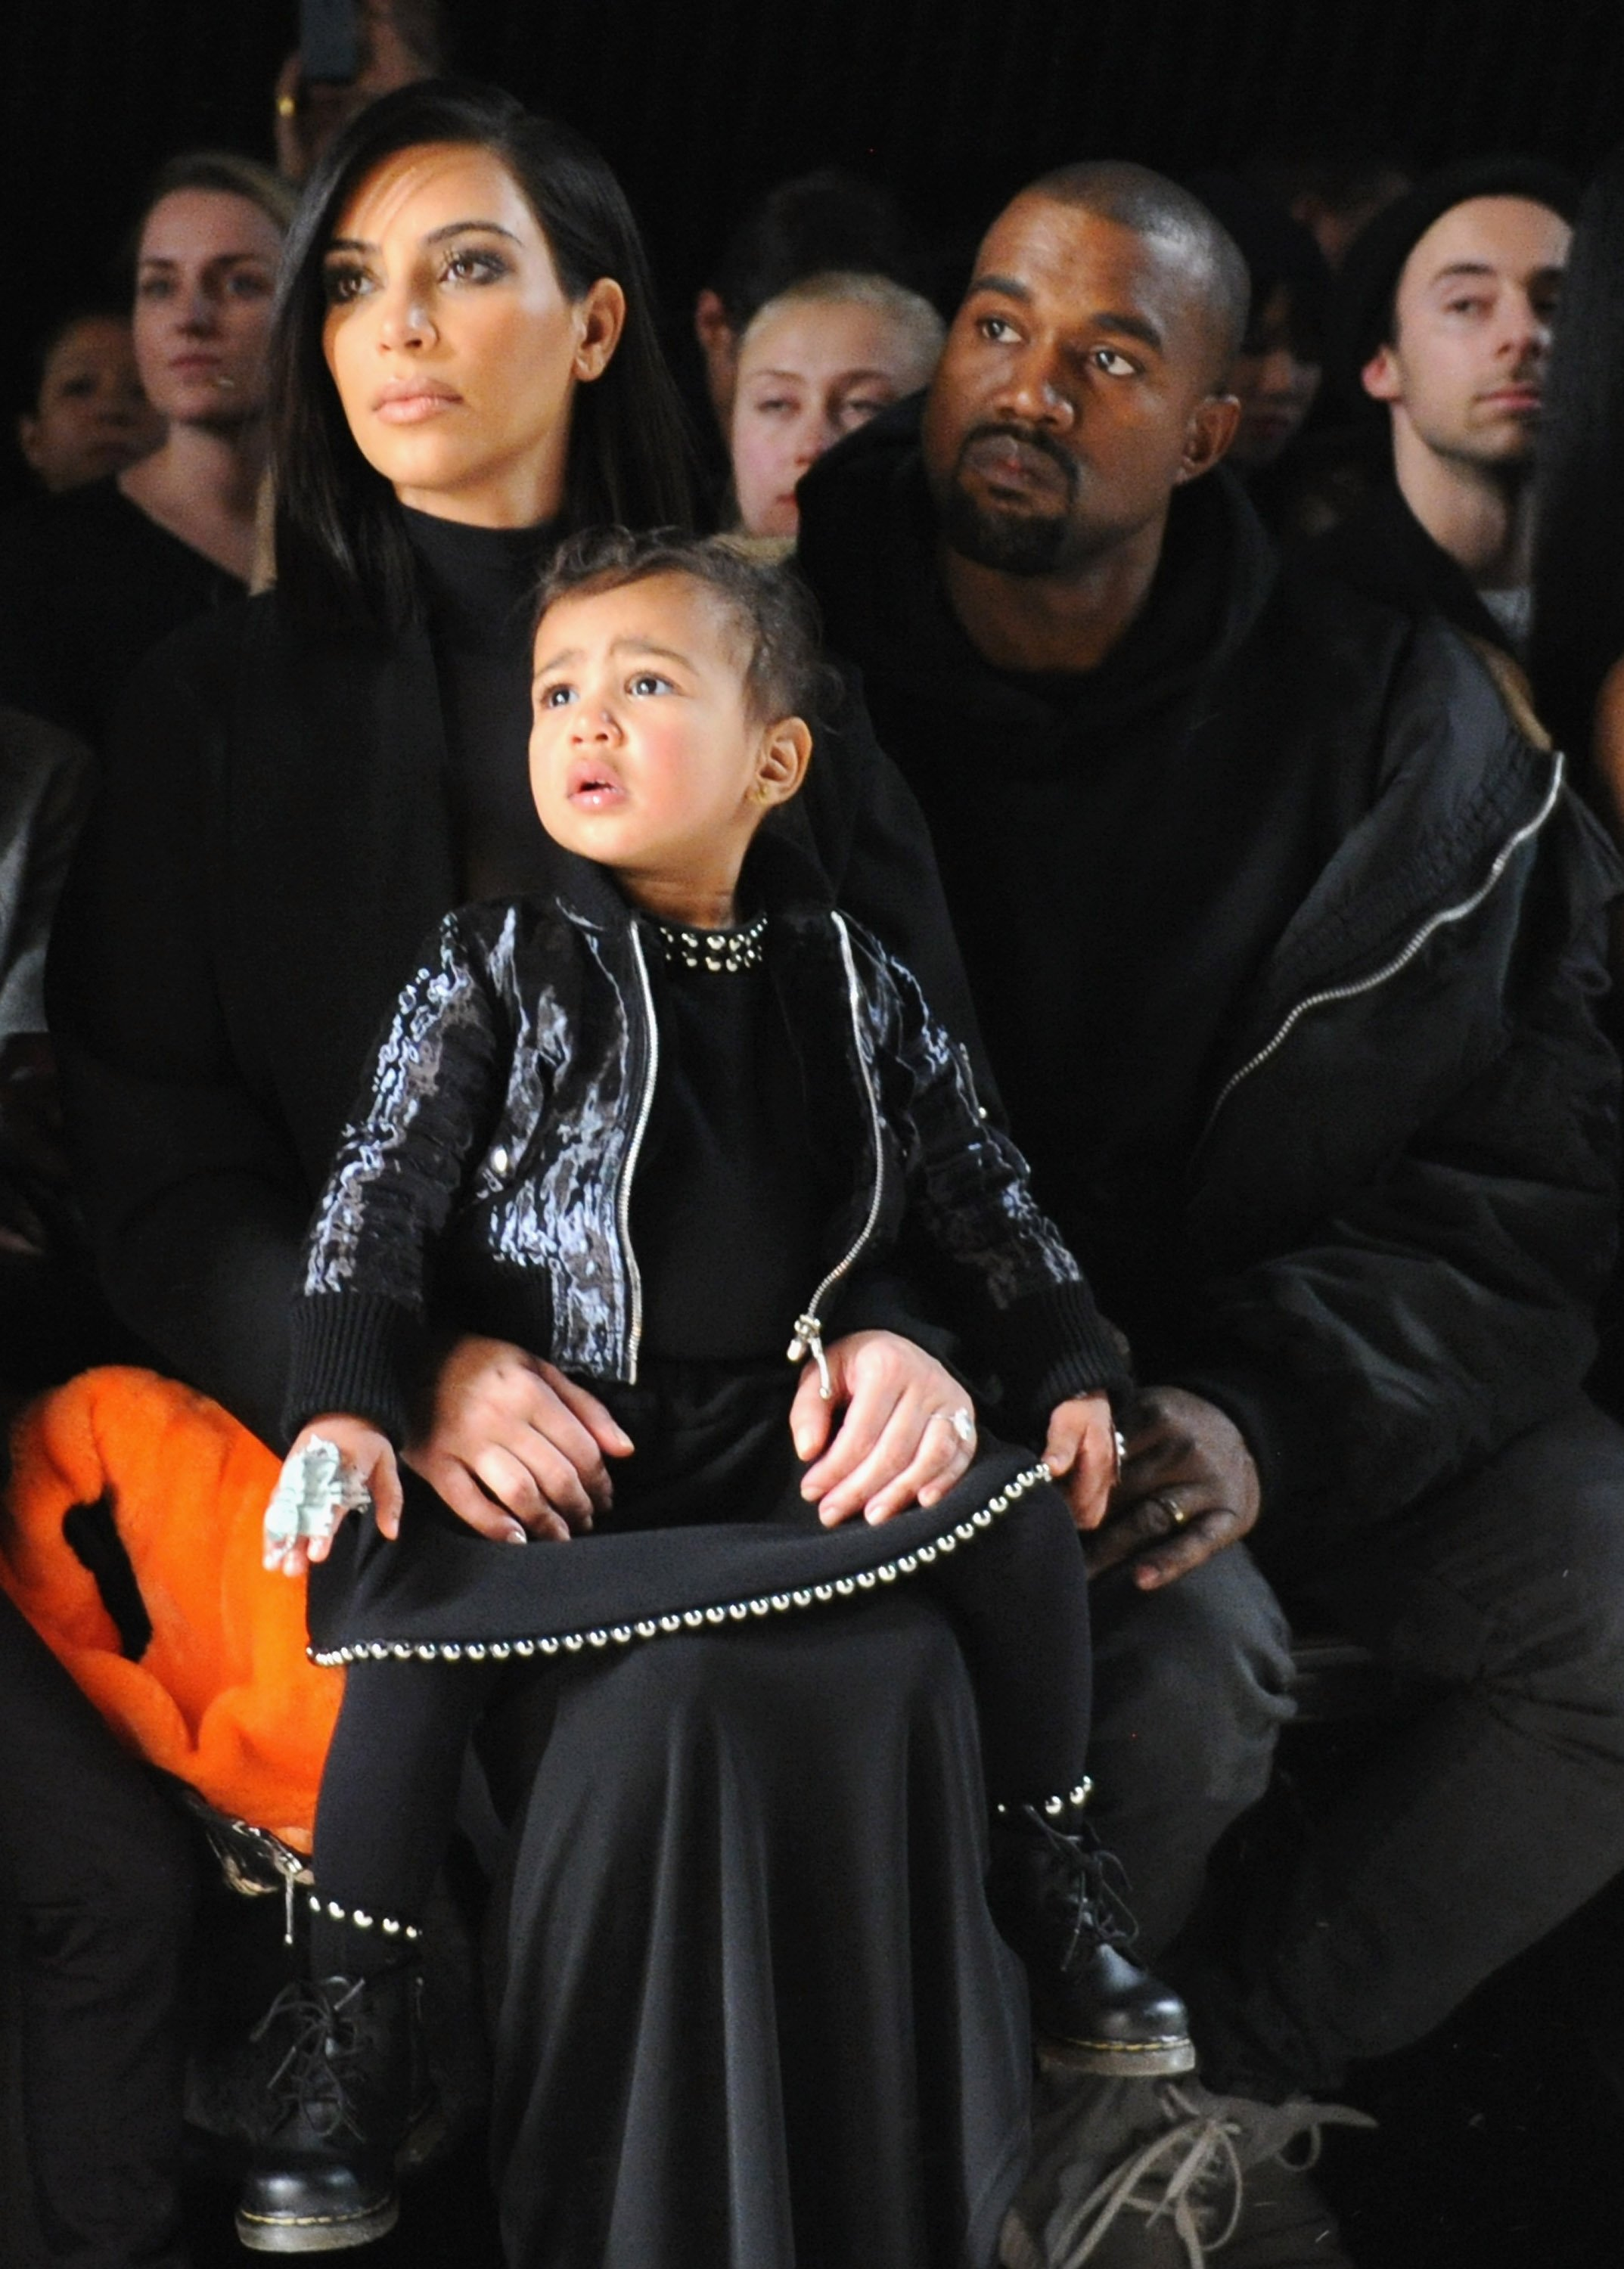 Kim Kardashian West, Kanye West and daughter Chicago West at the Mercedes-Benz Fashion Week in 2015 | Photo: Getty Images